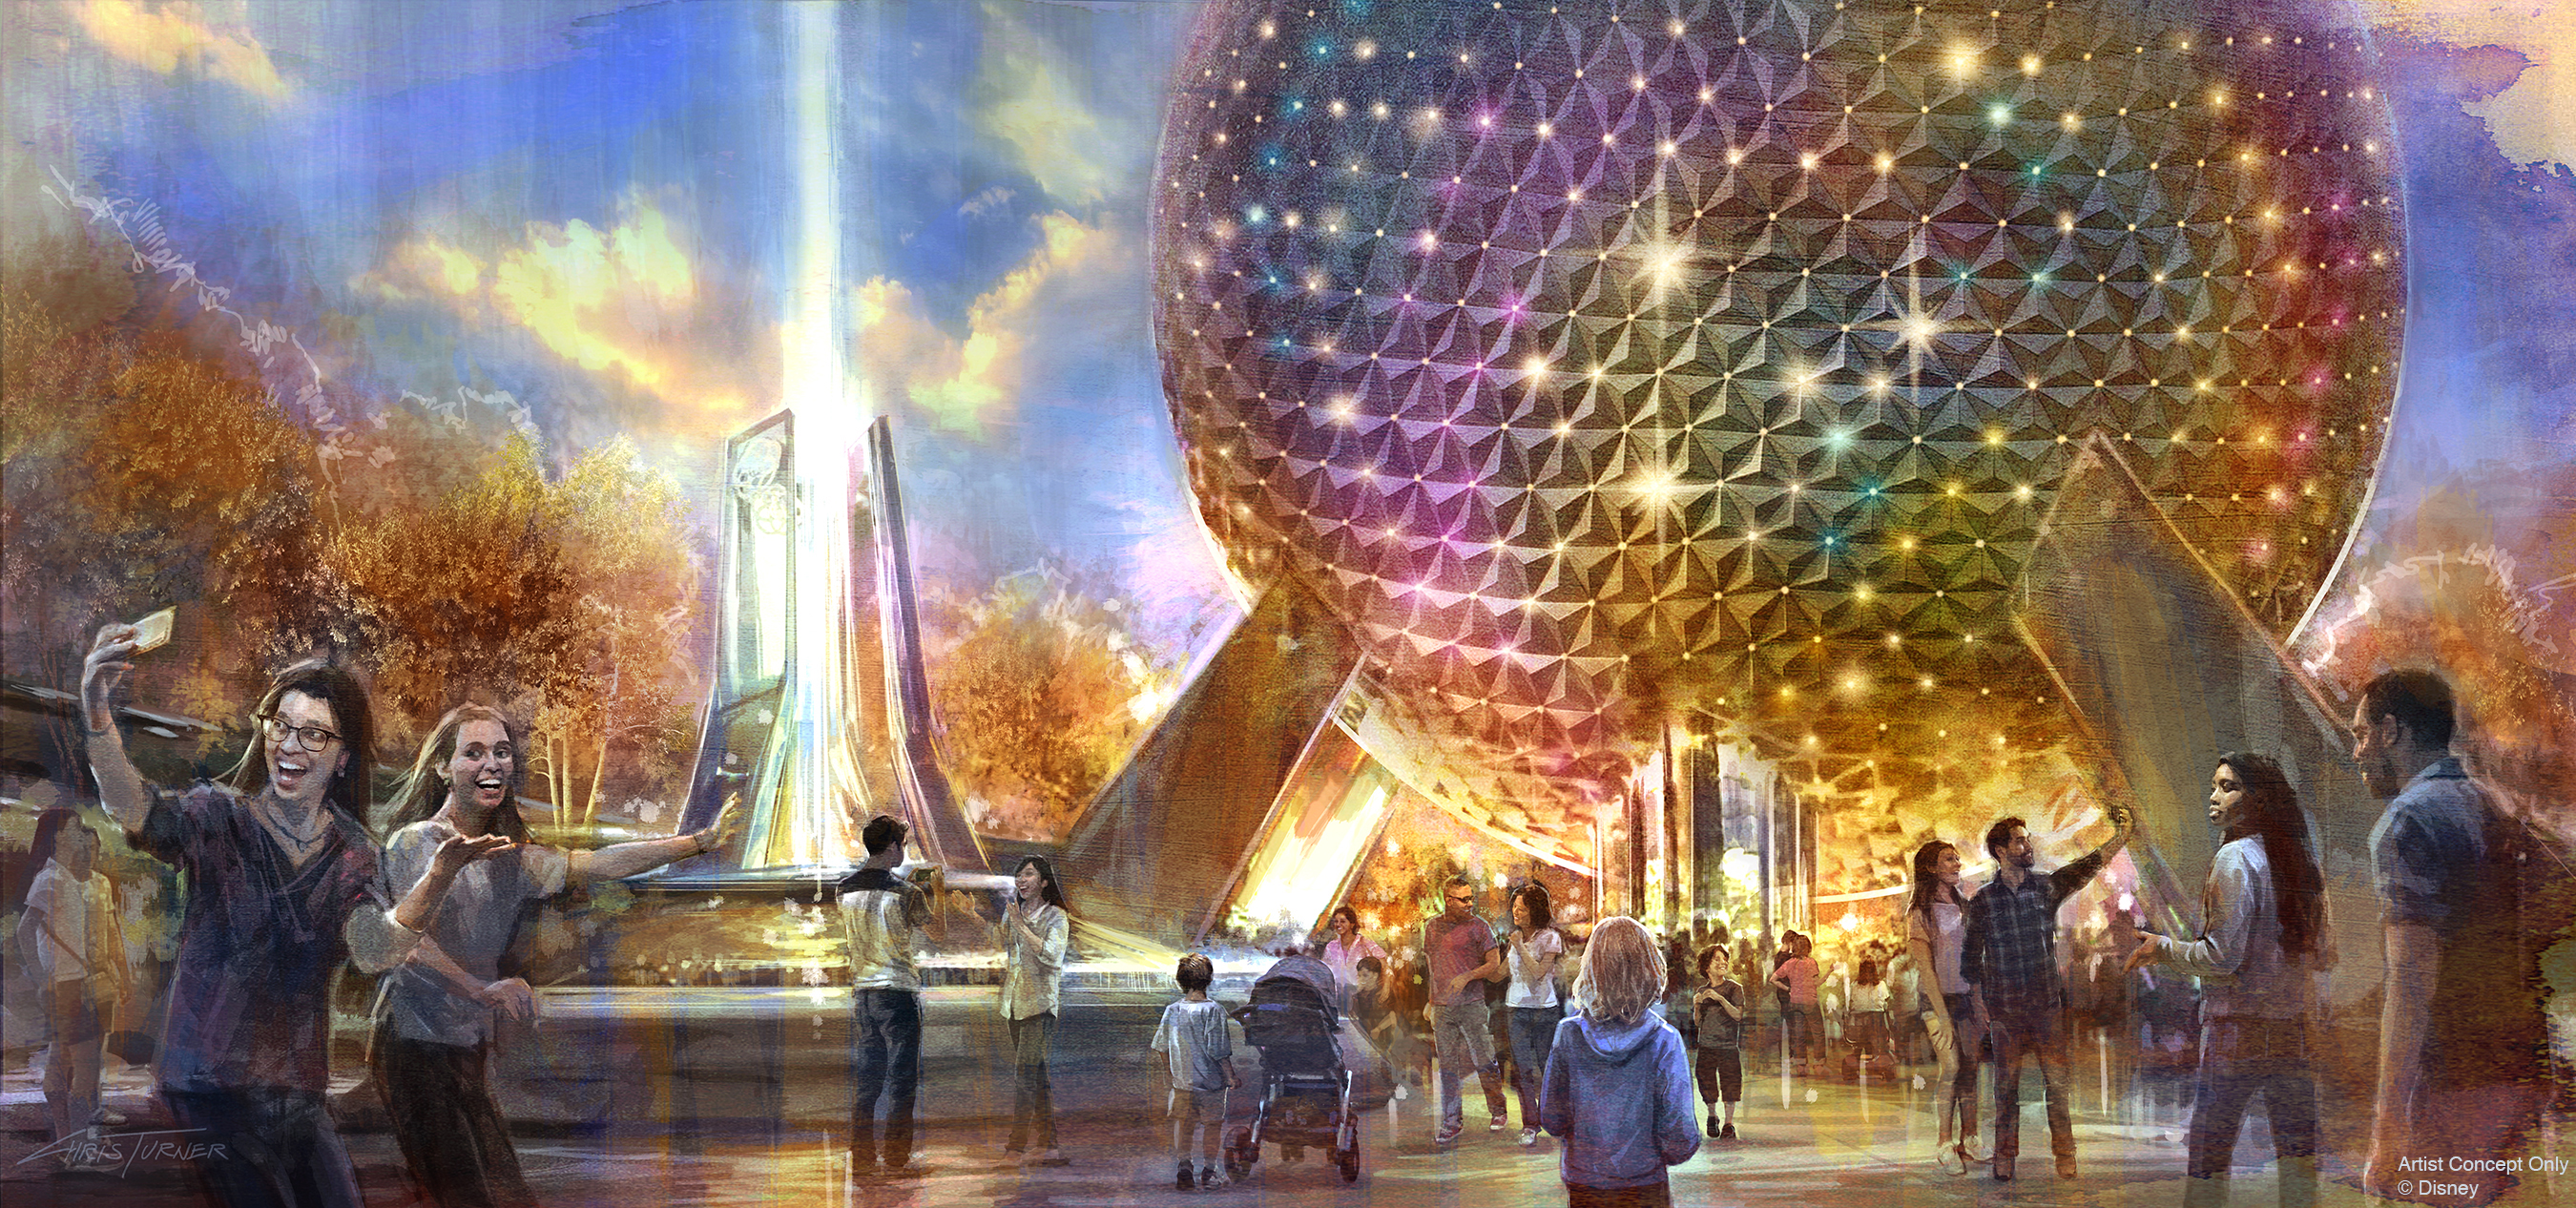 Concept art of Epcot's new main entrance